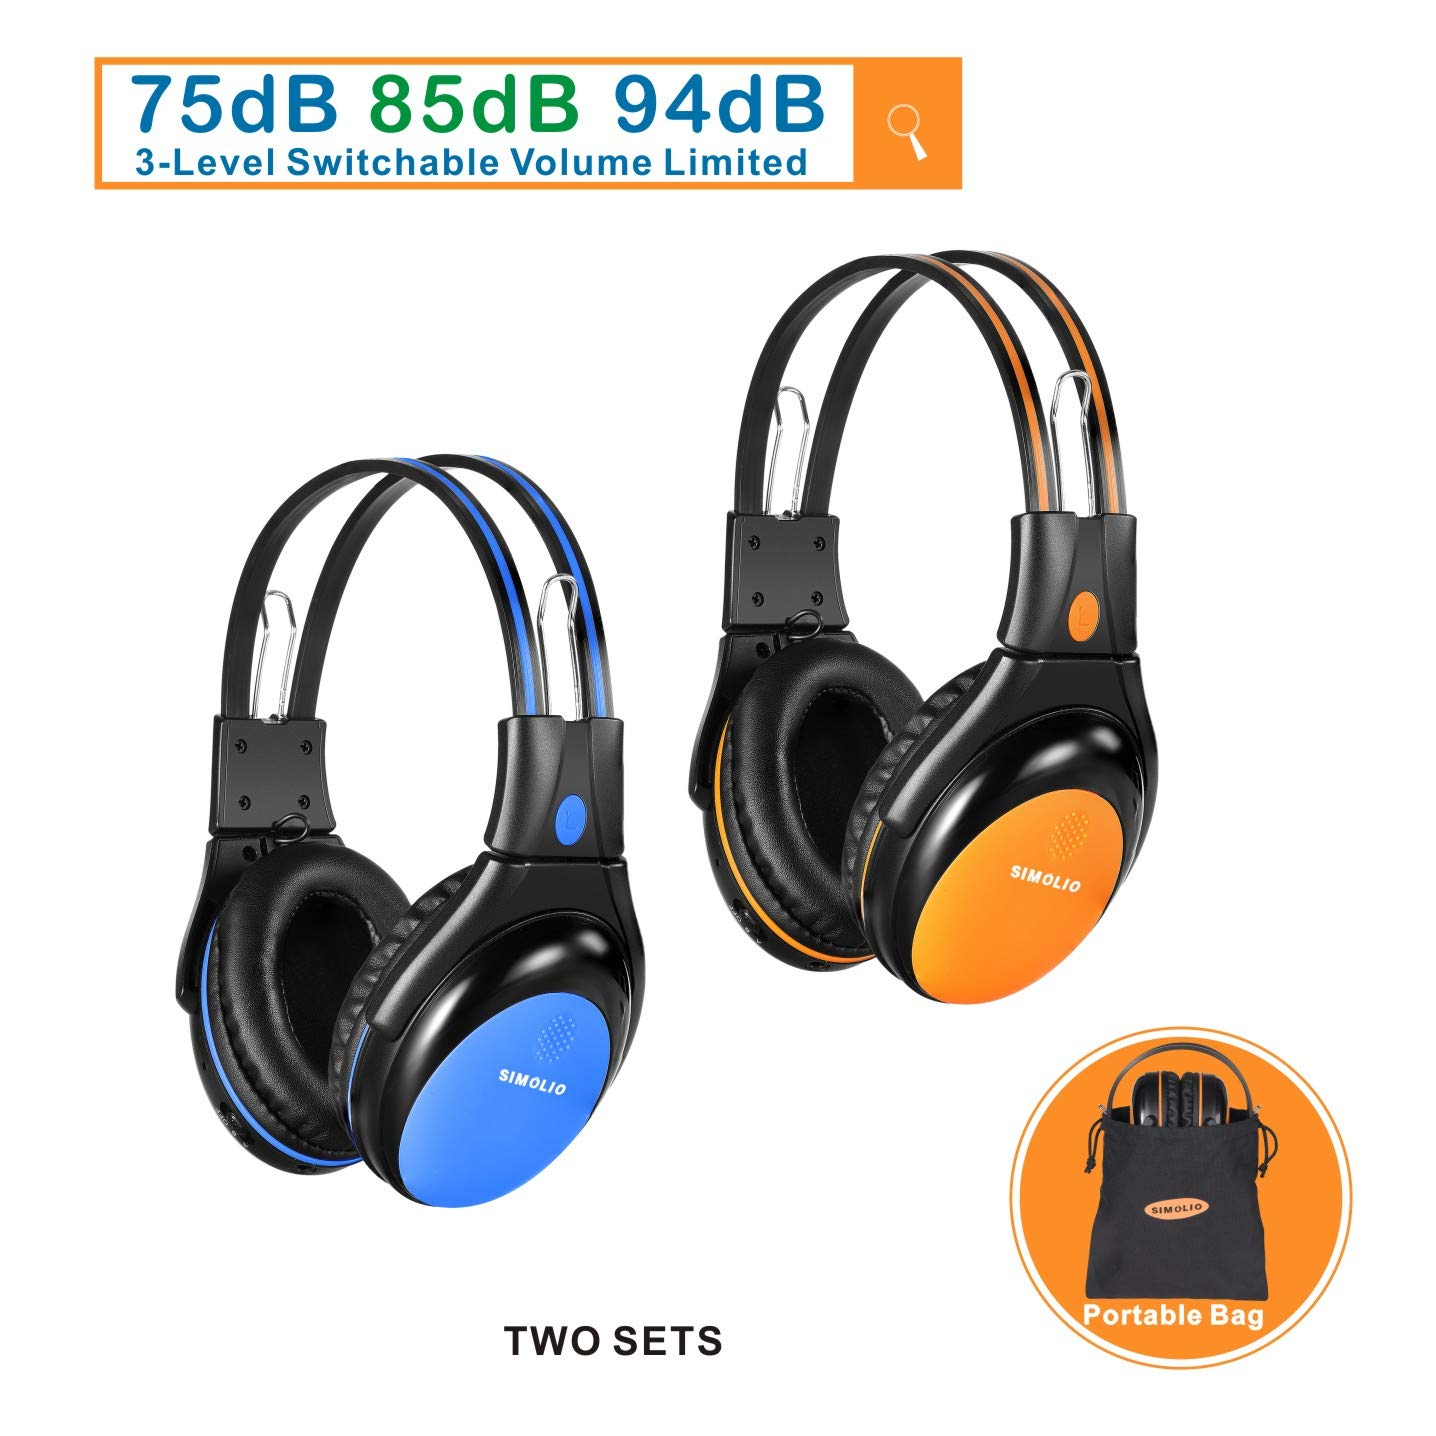 2 Pack of Car Headphones with 3 Levels Volume Limited, Infrared Wireless  Headphones for Car DVD/TV, Dual Channel Kids Wireless Headsets for Car DVD